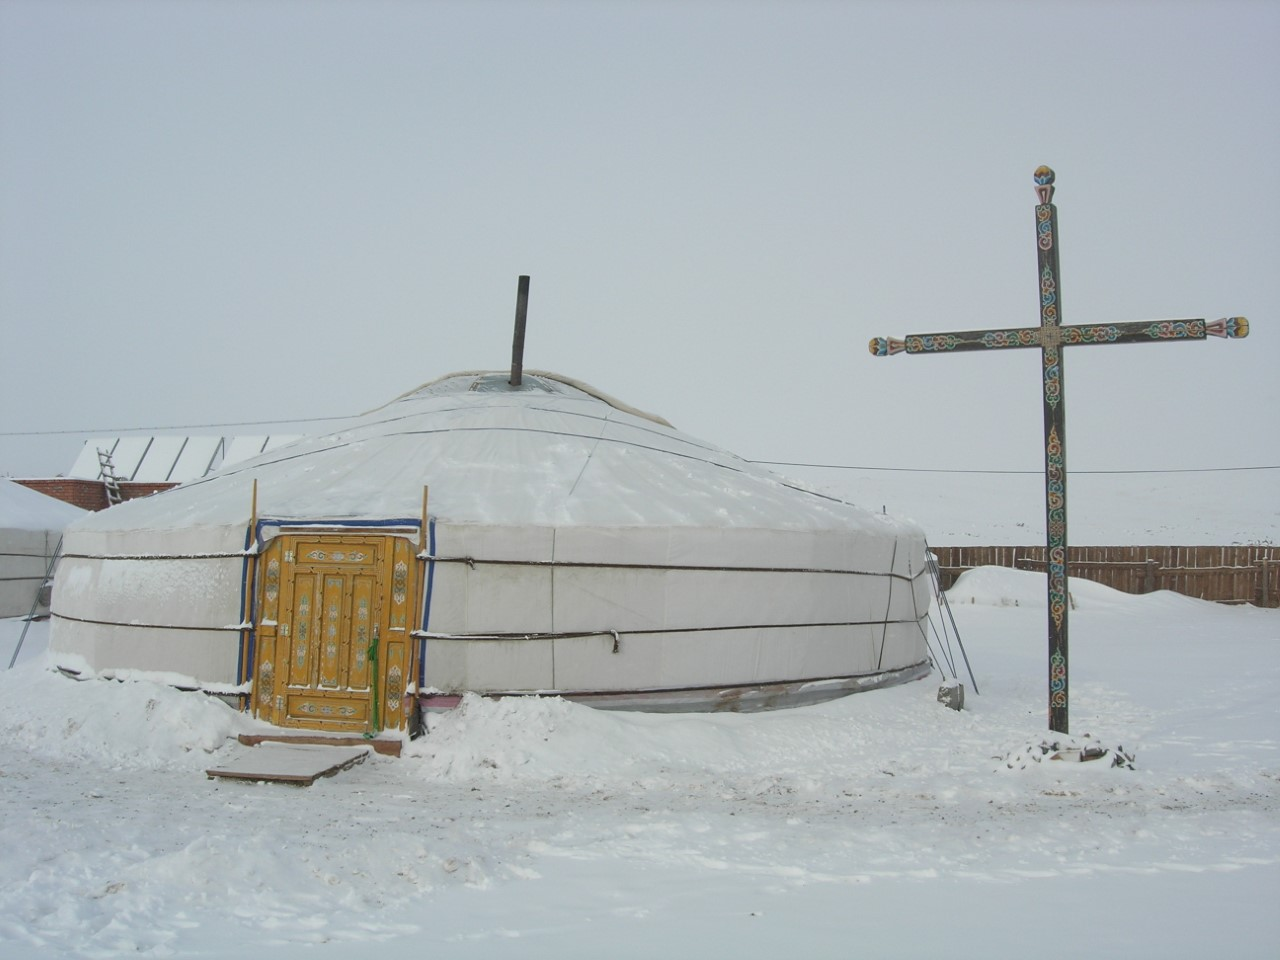 Mongolia---yurt with cross.jpg